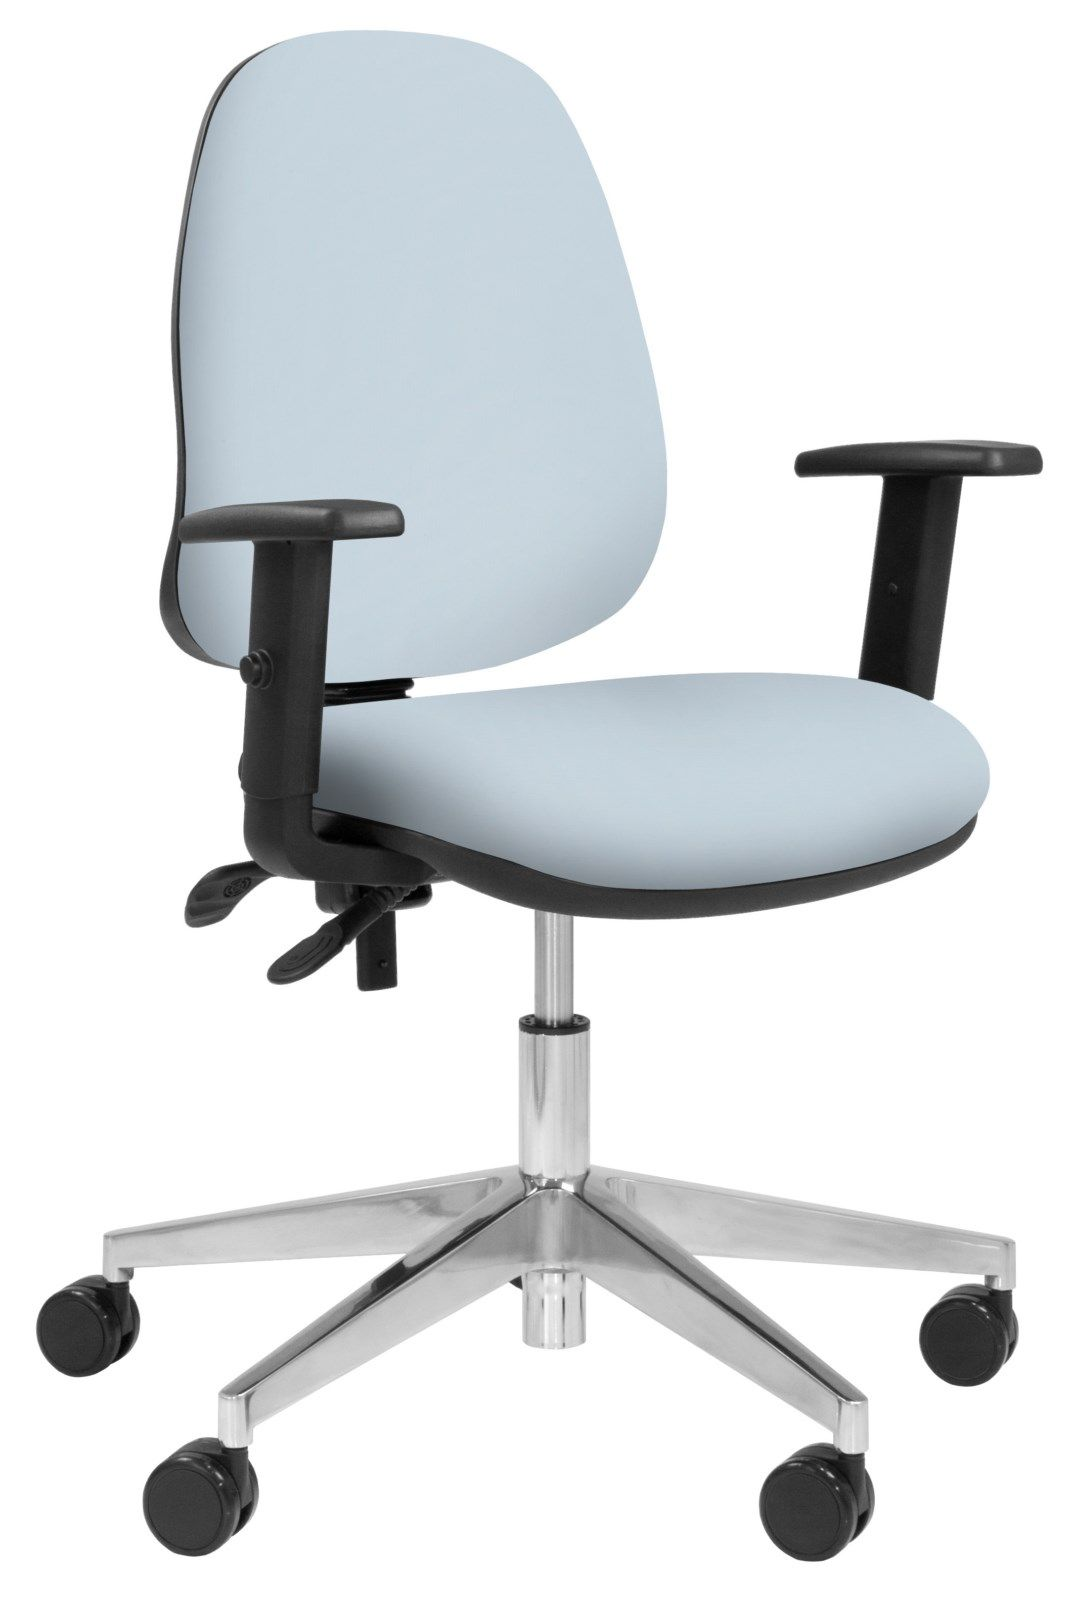 Team Plus Operator Chair Polished Base With Arms From Elite